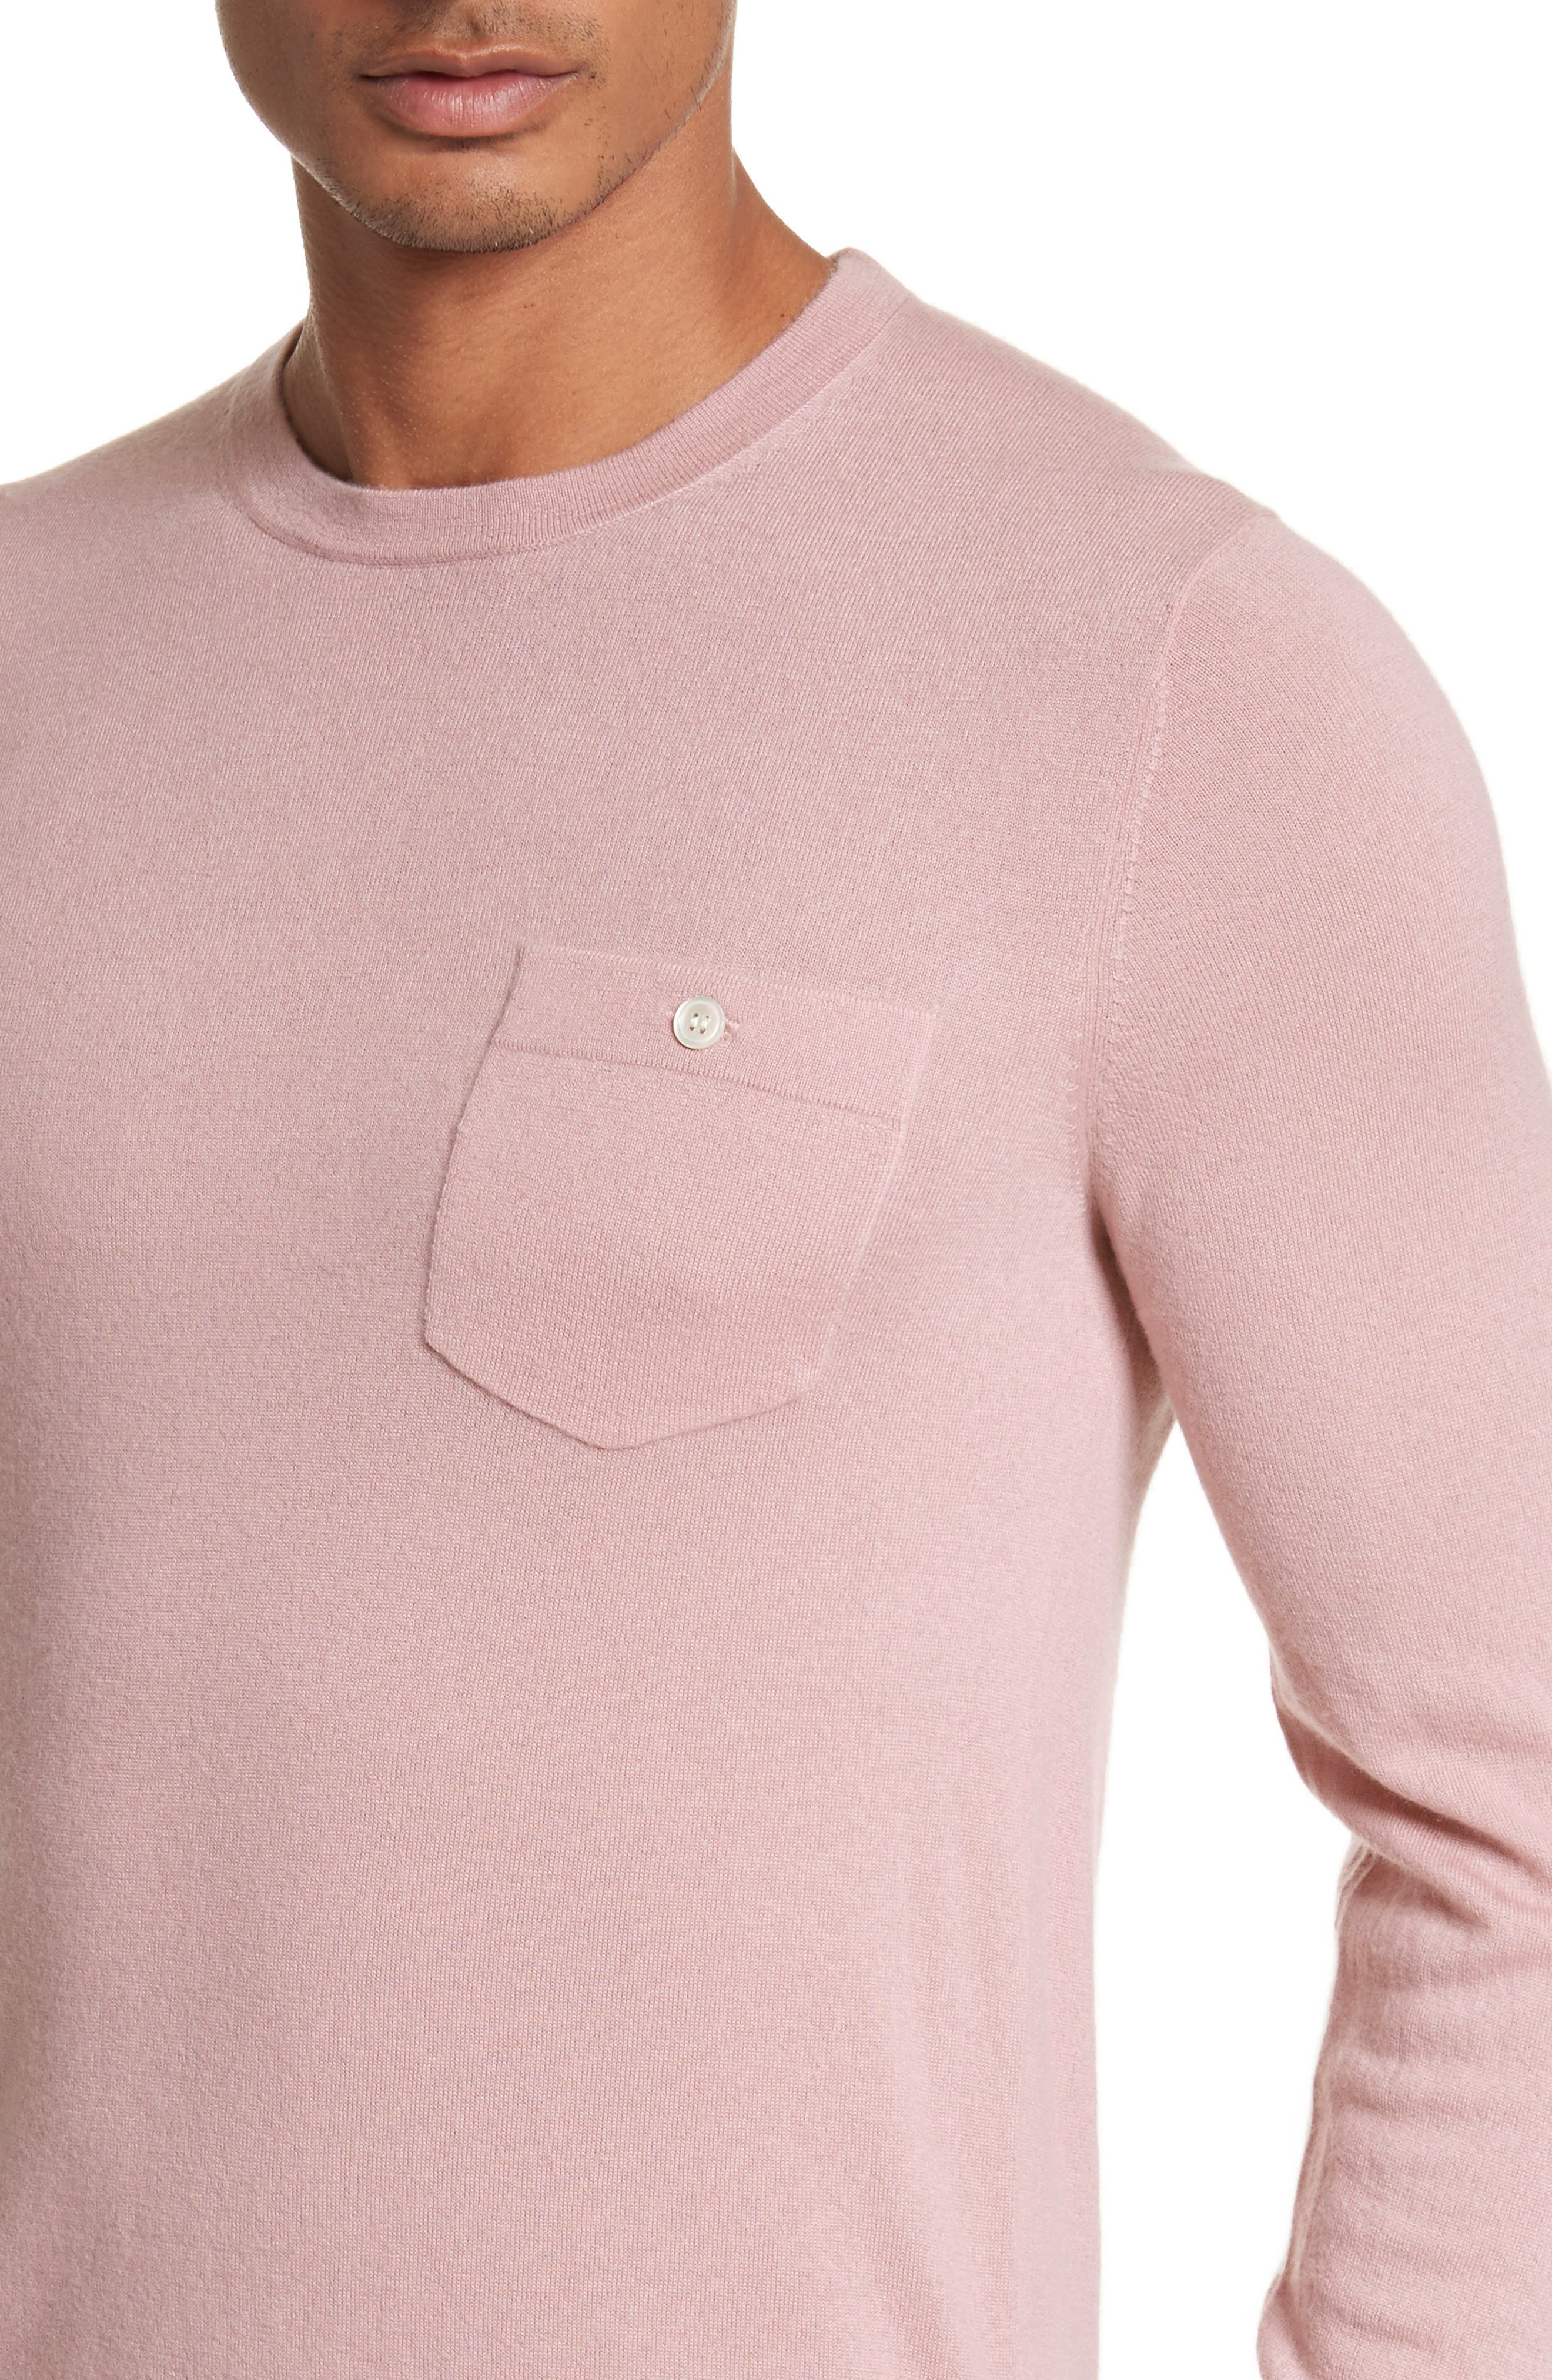 Cashmere Long Sleeve T-Shirt,                             Alternate thumbnail 4, color,                             Pink